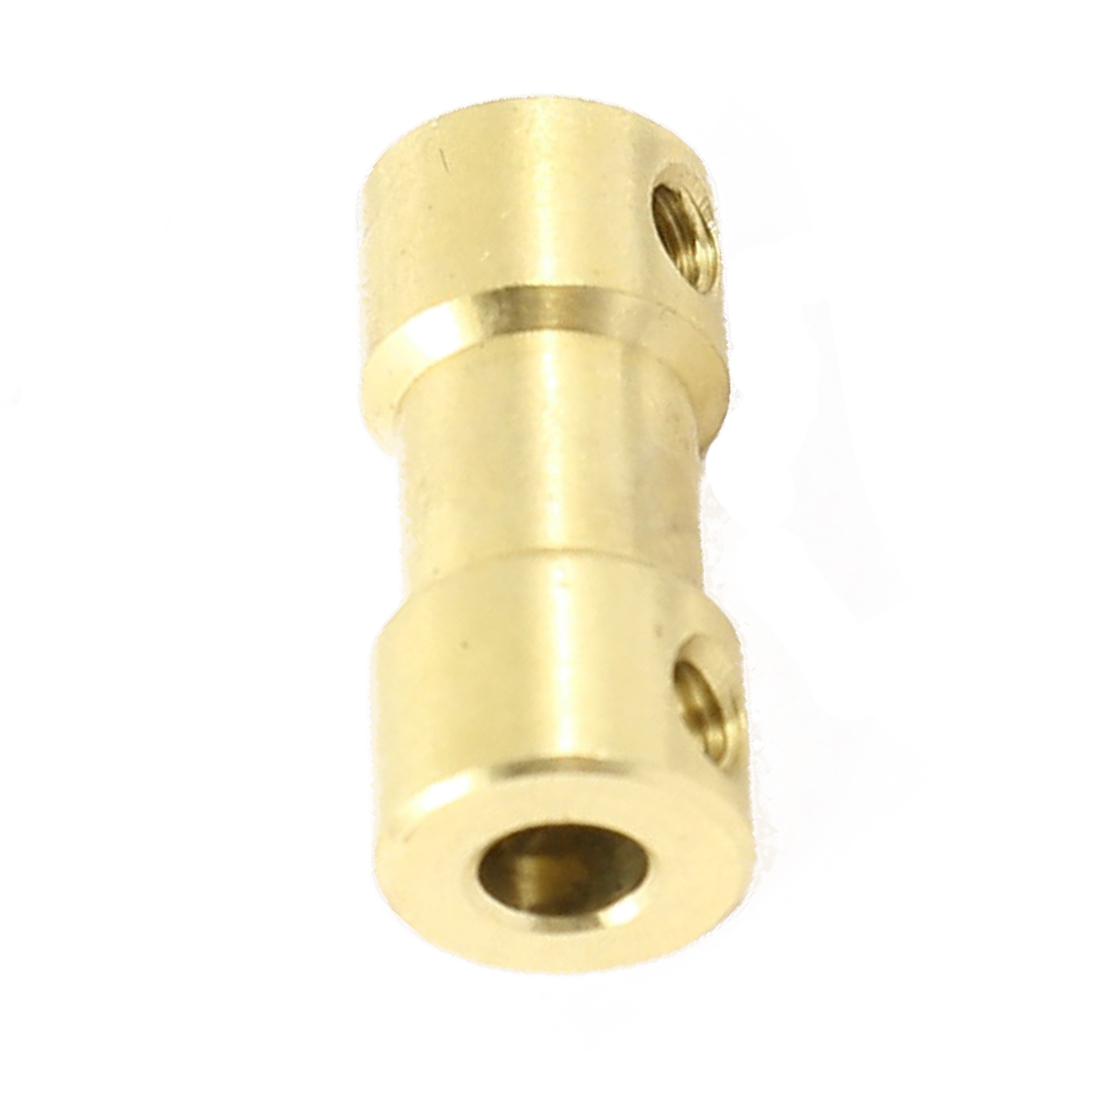 RC Airplane 3mm to 5mm Brass Motor Coupling Shaft Coupler Connector